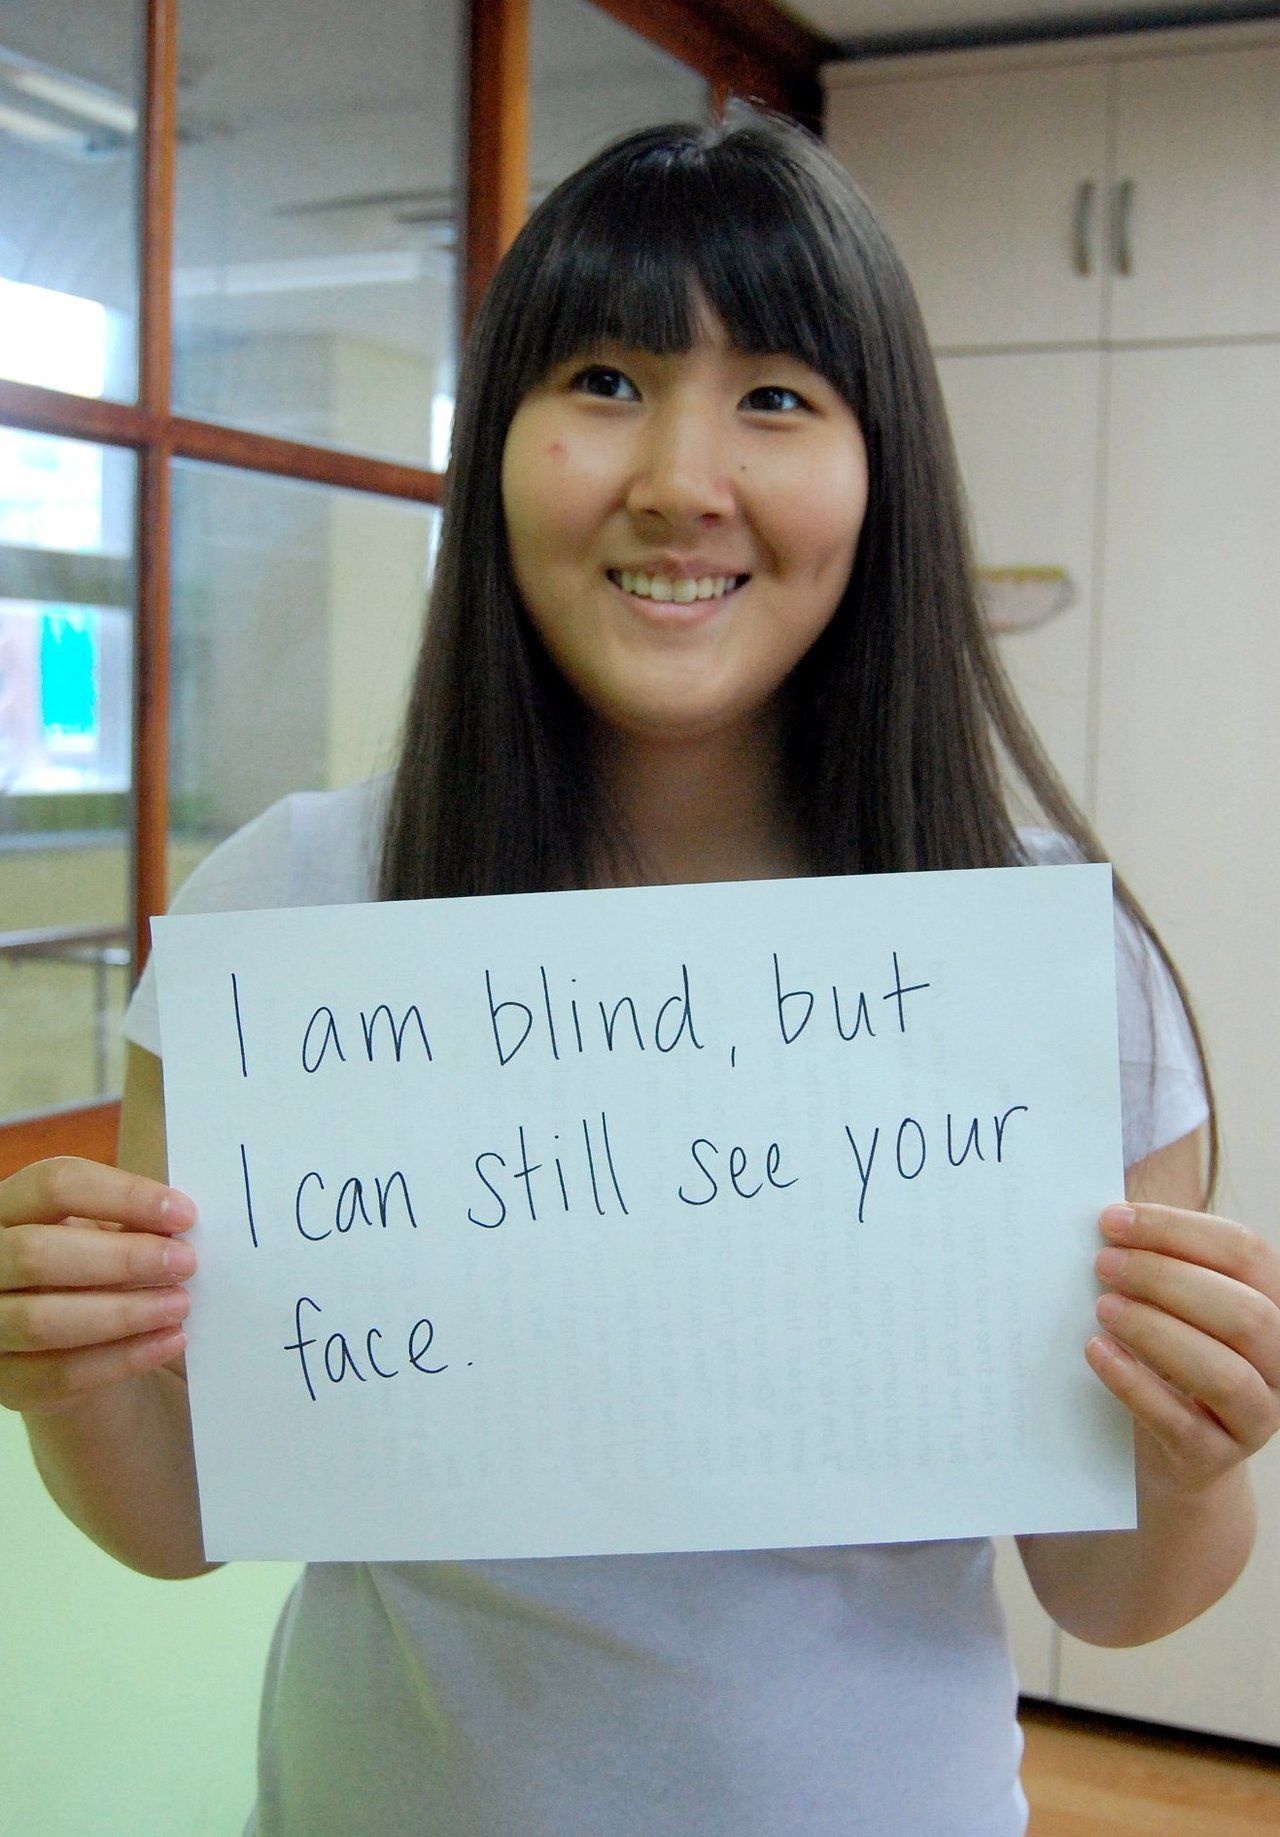 I am blind, but I can still see your face.